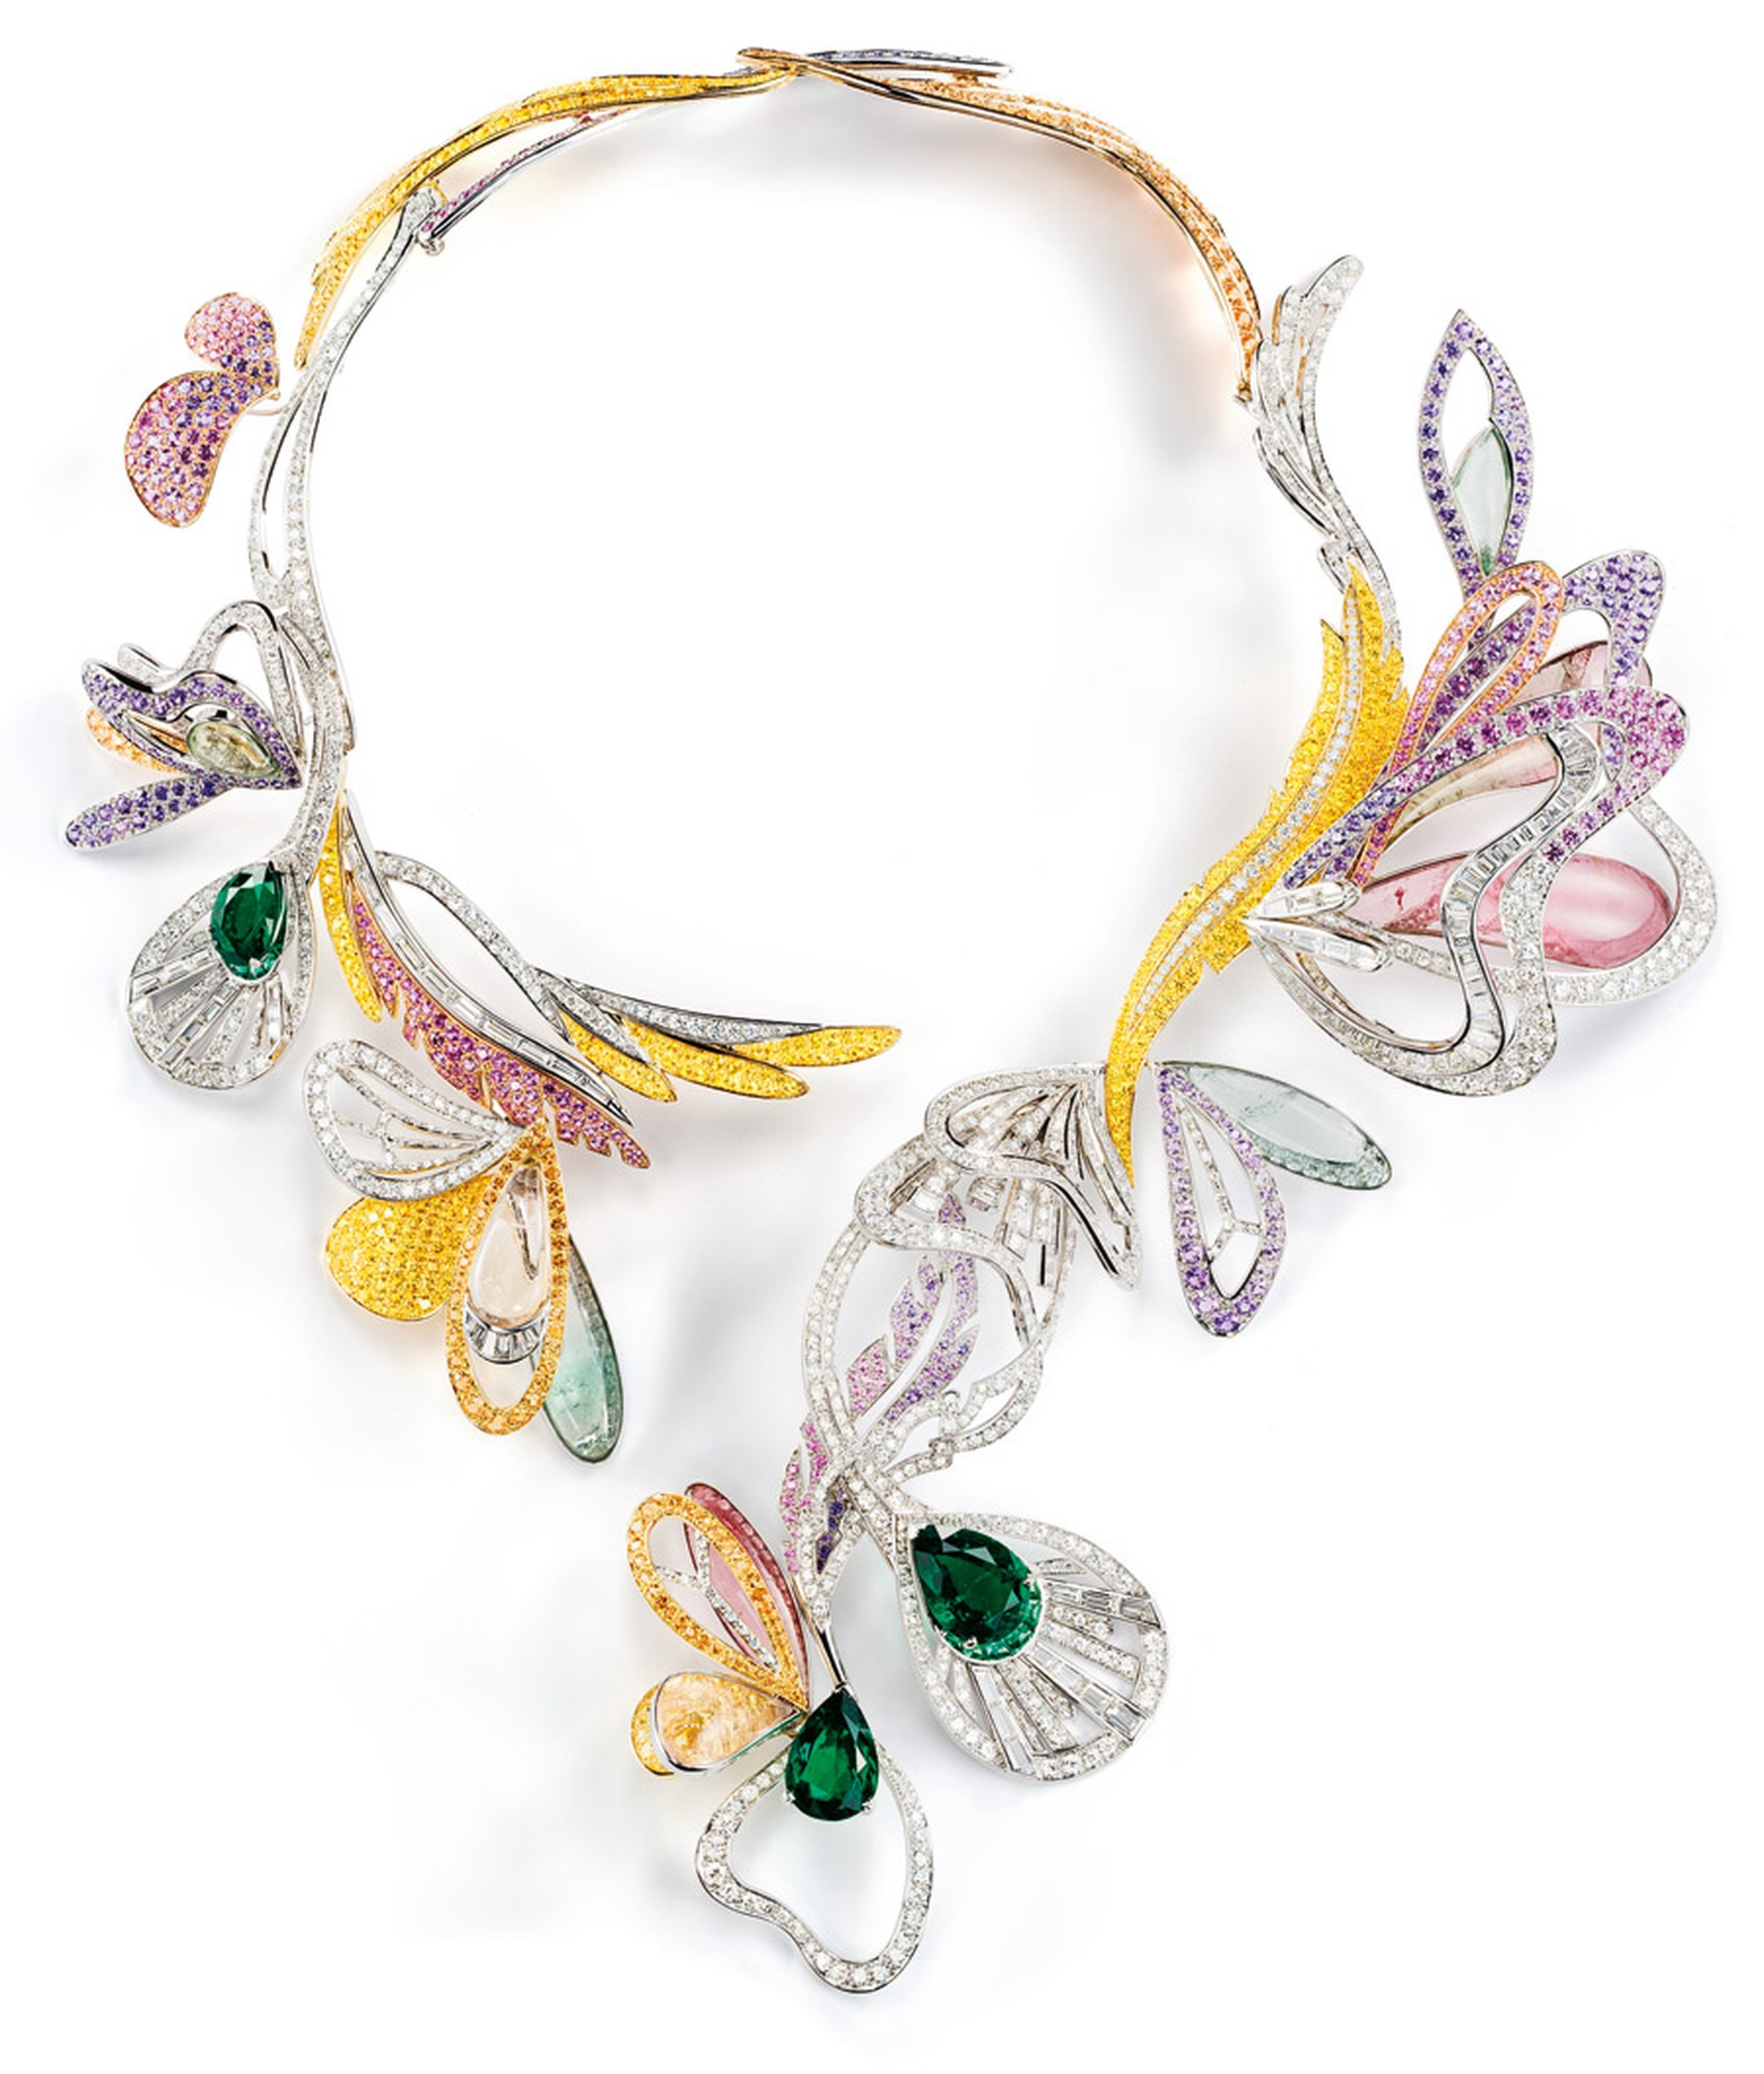 Boucheron Bouquet d'Ailes necklace set with emeralds, coloured sapphires, fine stones and diamonds